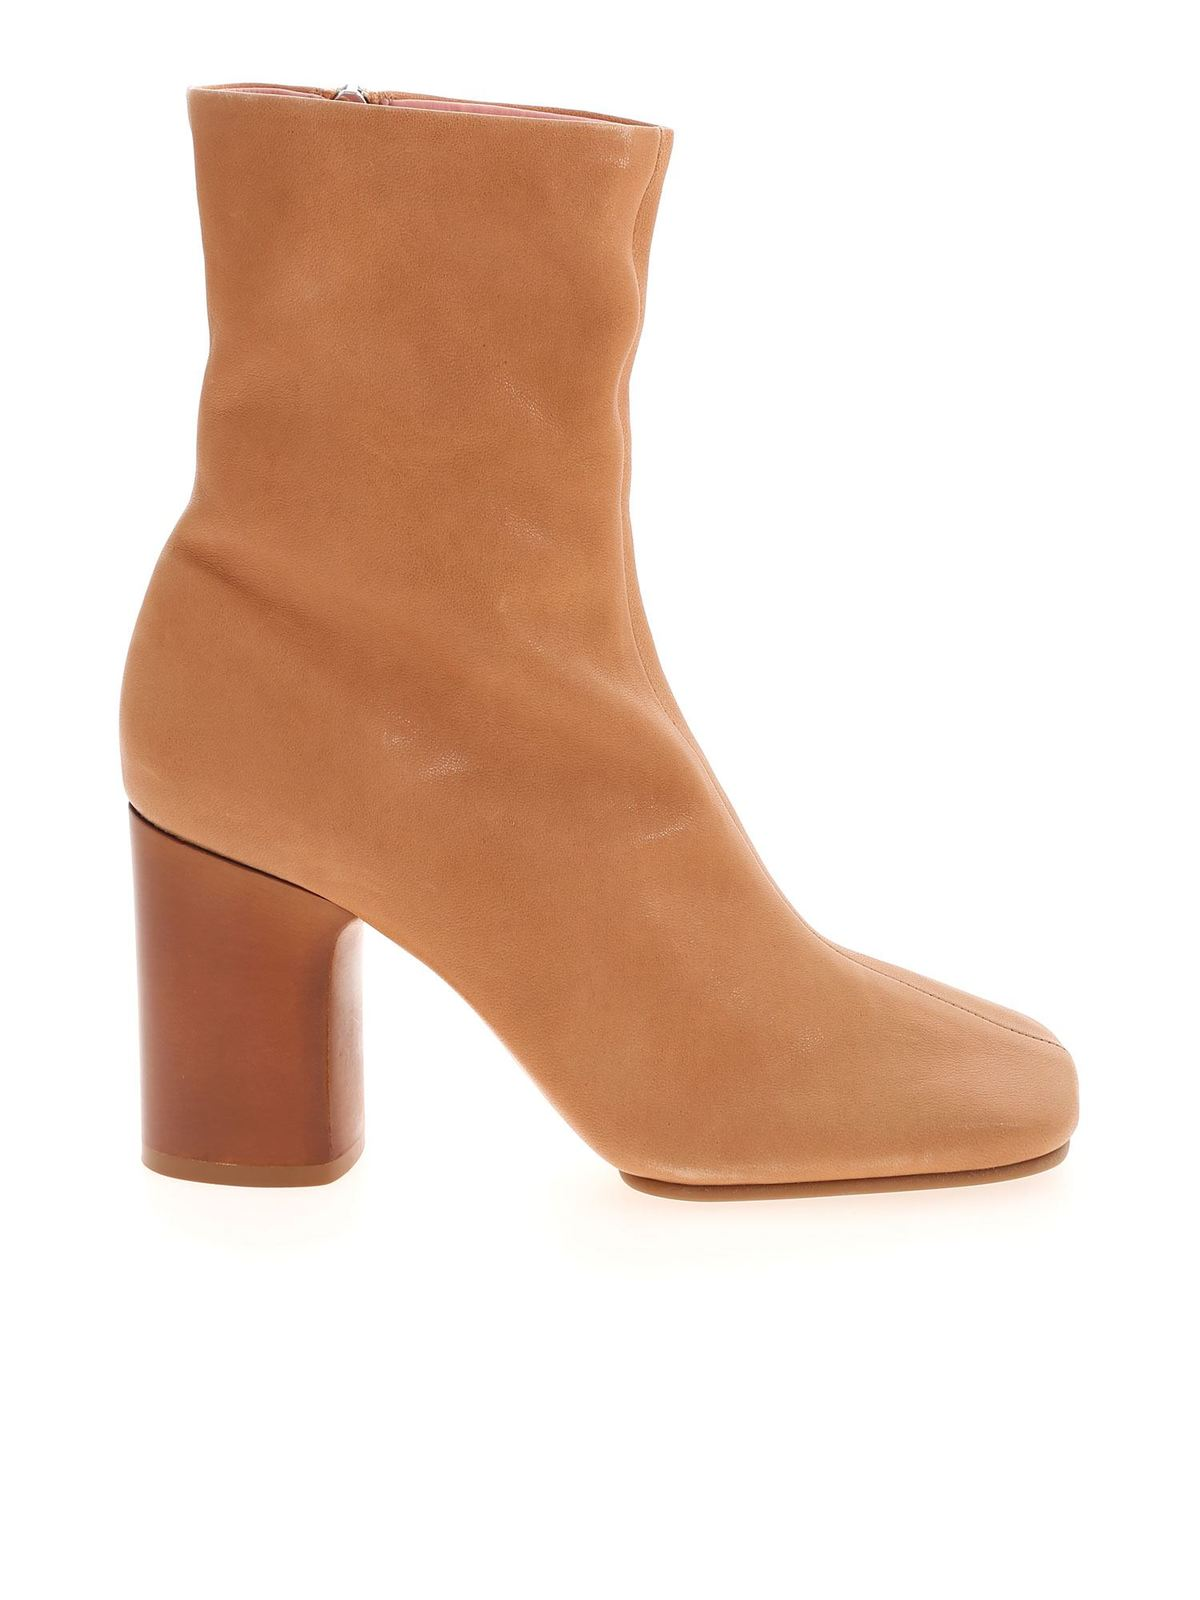 Acne Studios SQUARE TOE ANKLE BOOTS IN BEIGE